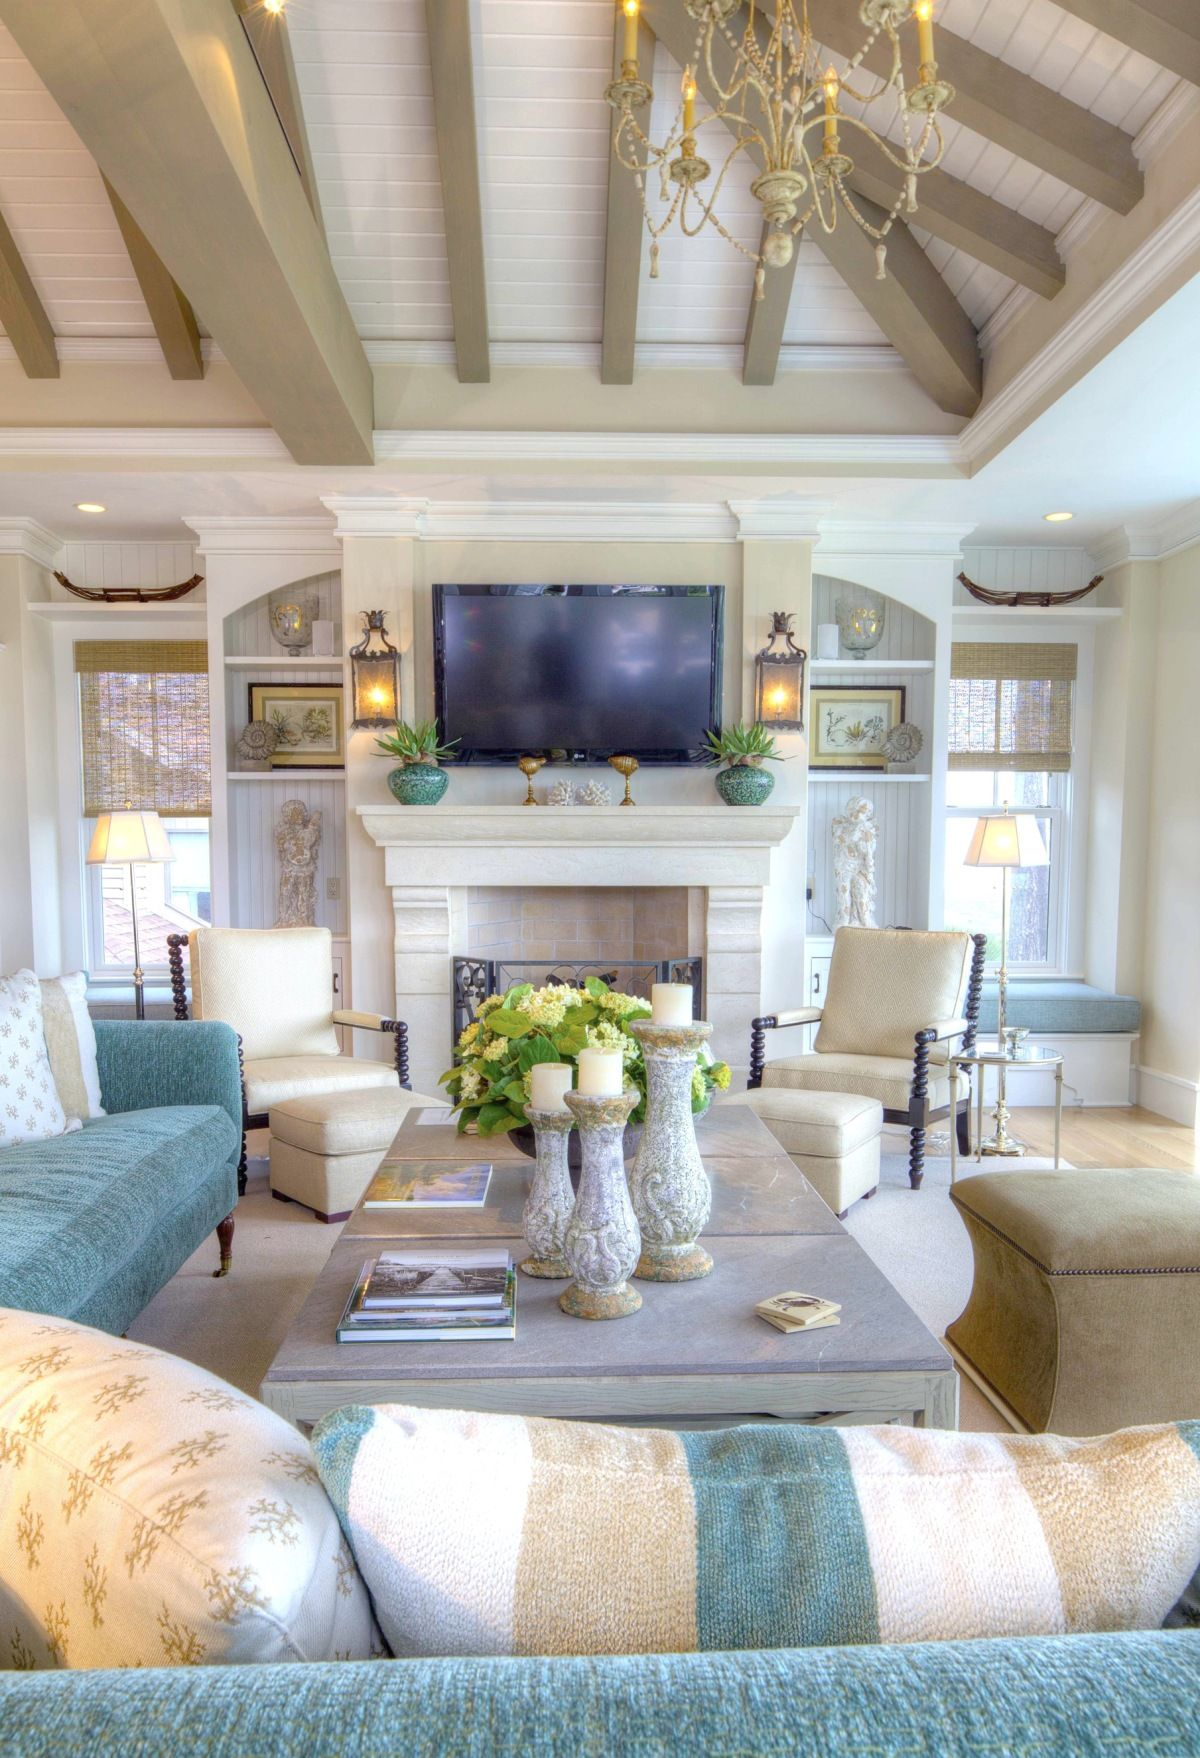 Furniture layout chairs flanking fireplace for the home - Beach house furniture ideas ...